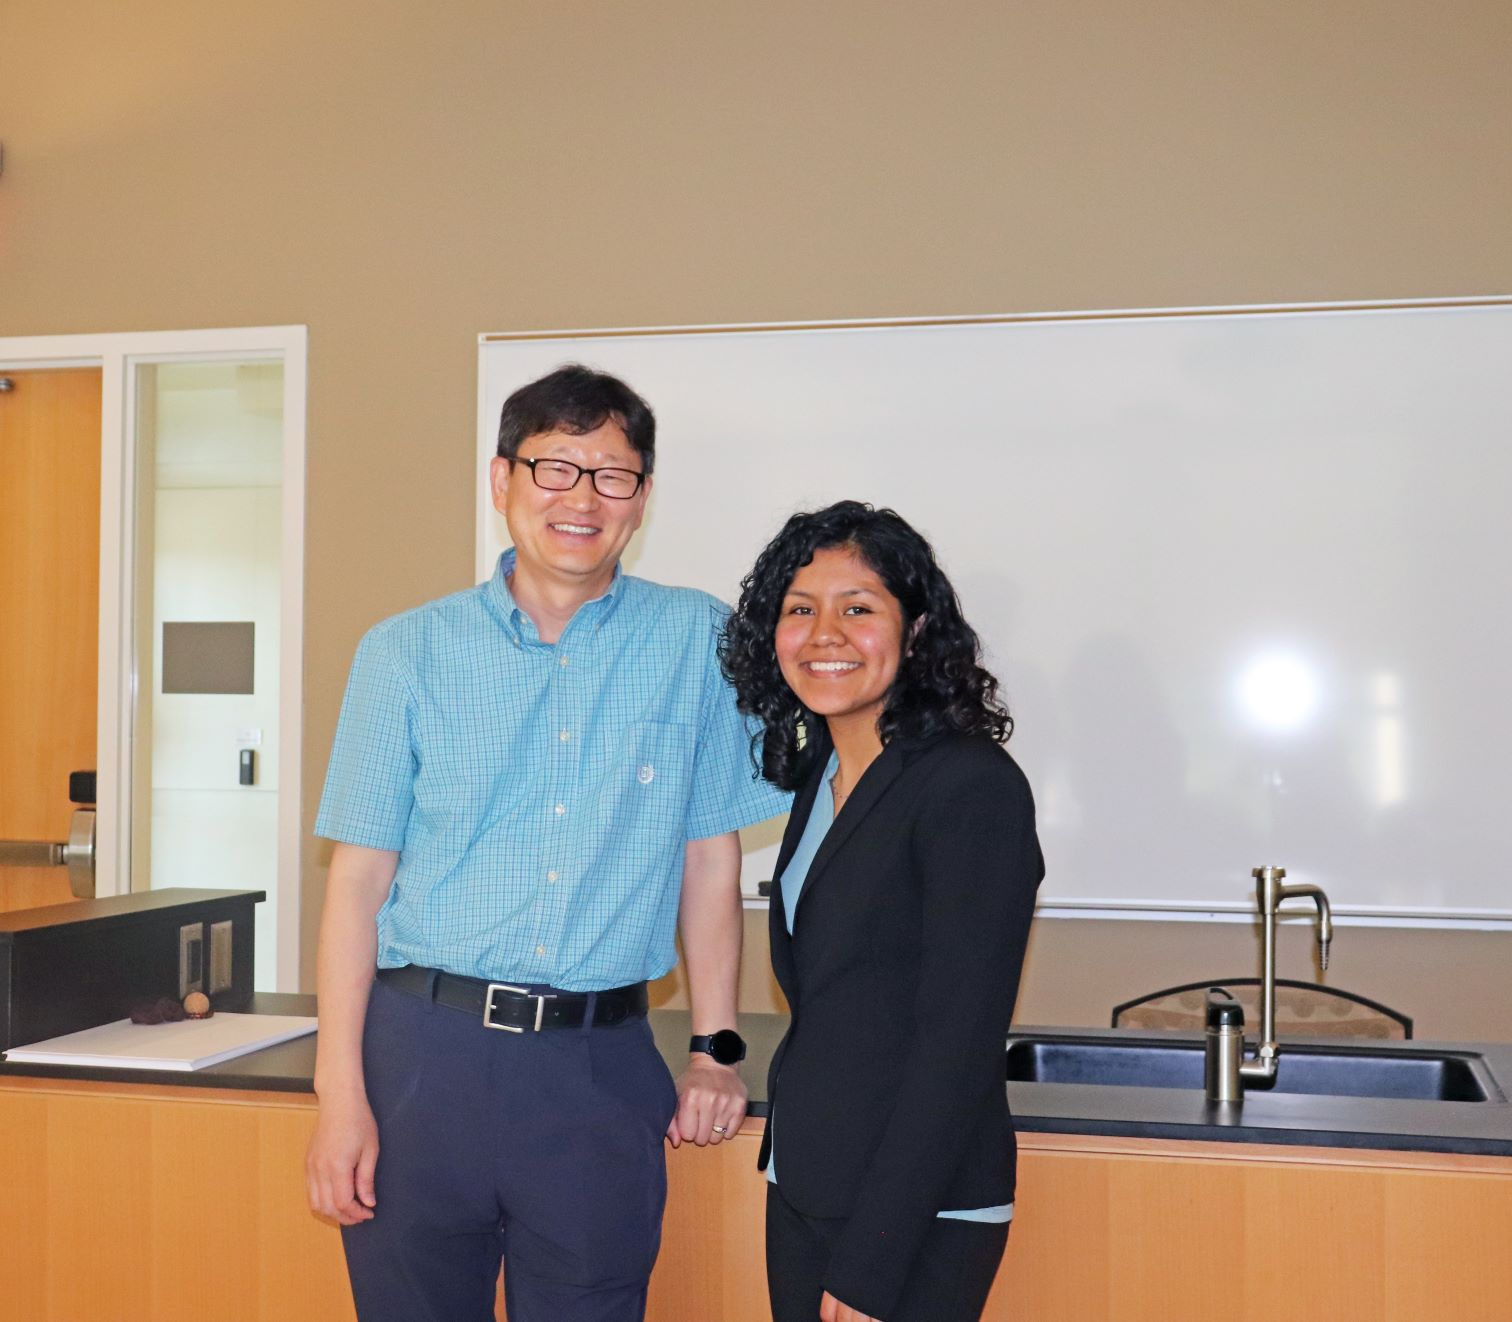 Assistant Professor of Chemistry Dr. Wooseok Ki mentored Dianareli Dolores during her STEM research. Both pose for the camera with smiles at the Research and Engineering Apprenticeship (REAP) Symposium.